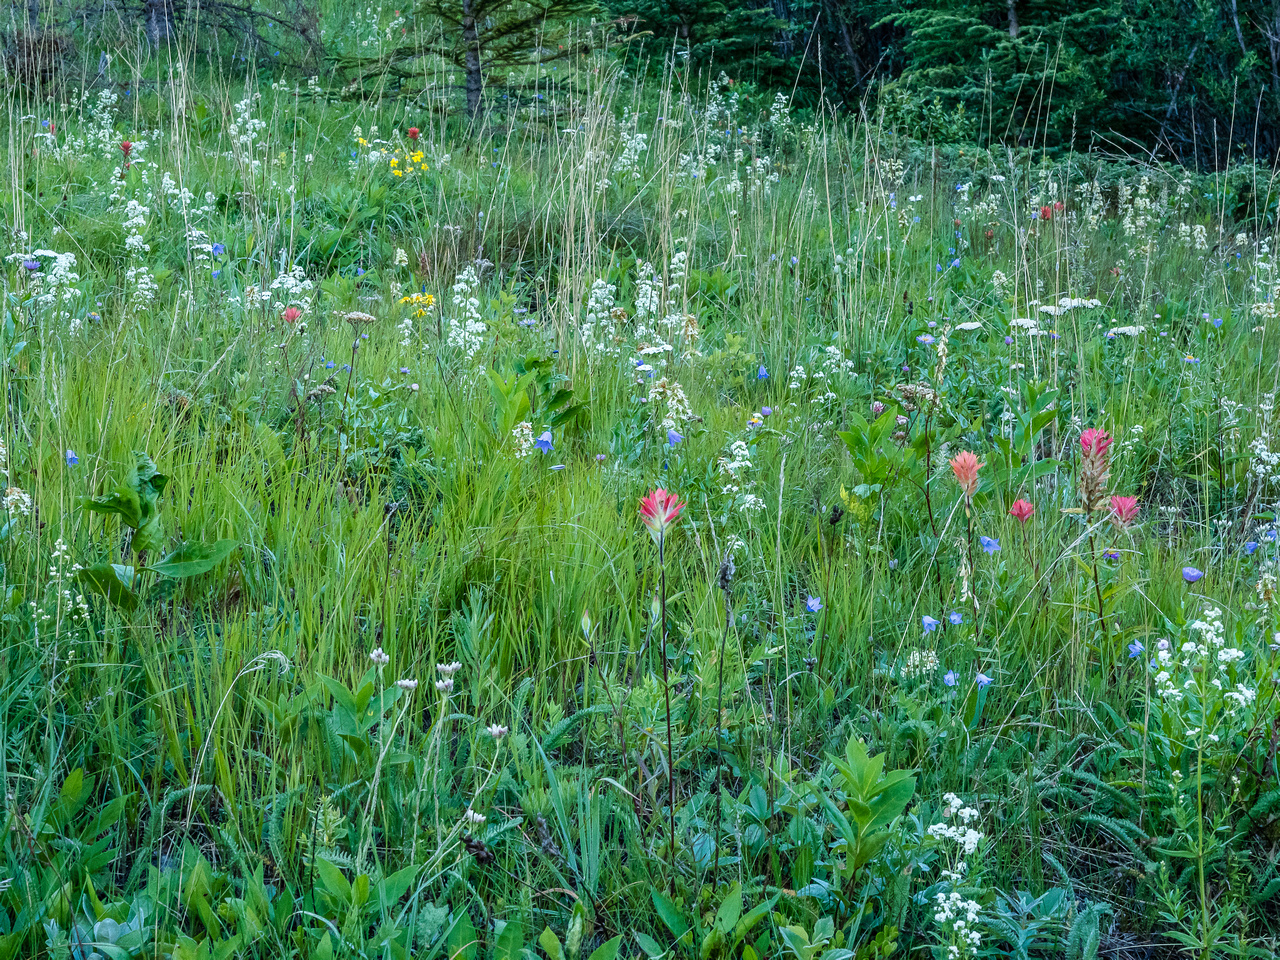 There are a lot more flowers along the trail than 6 weeks ago!